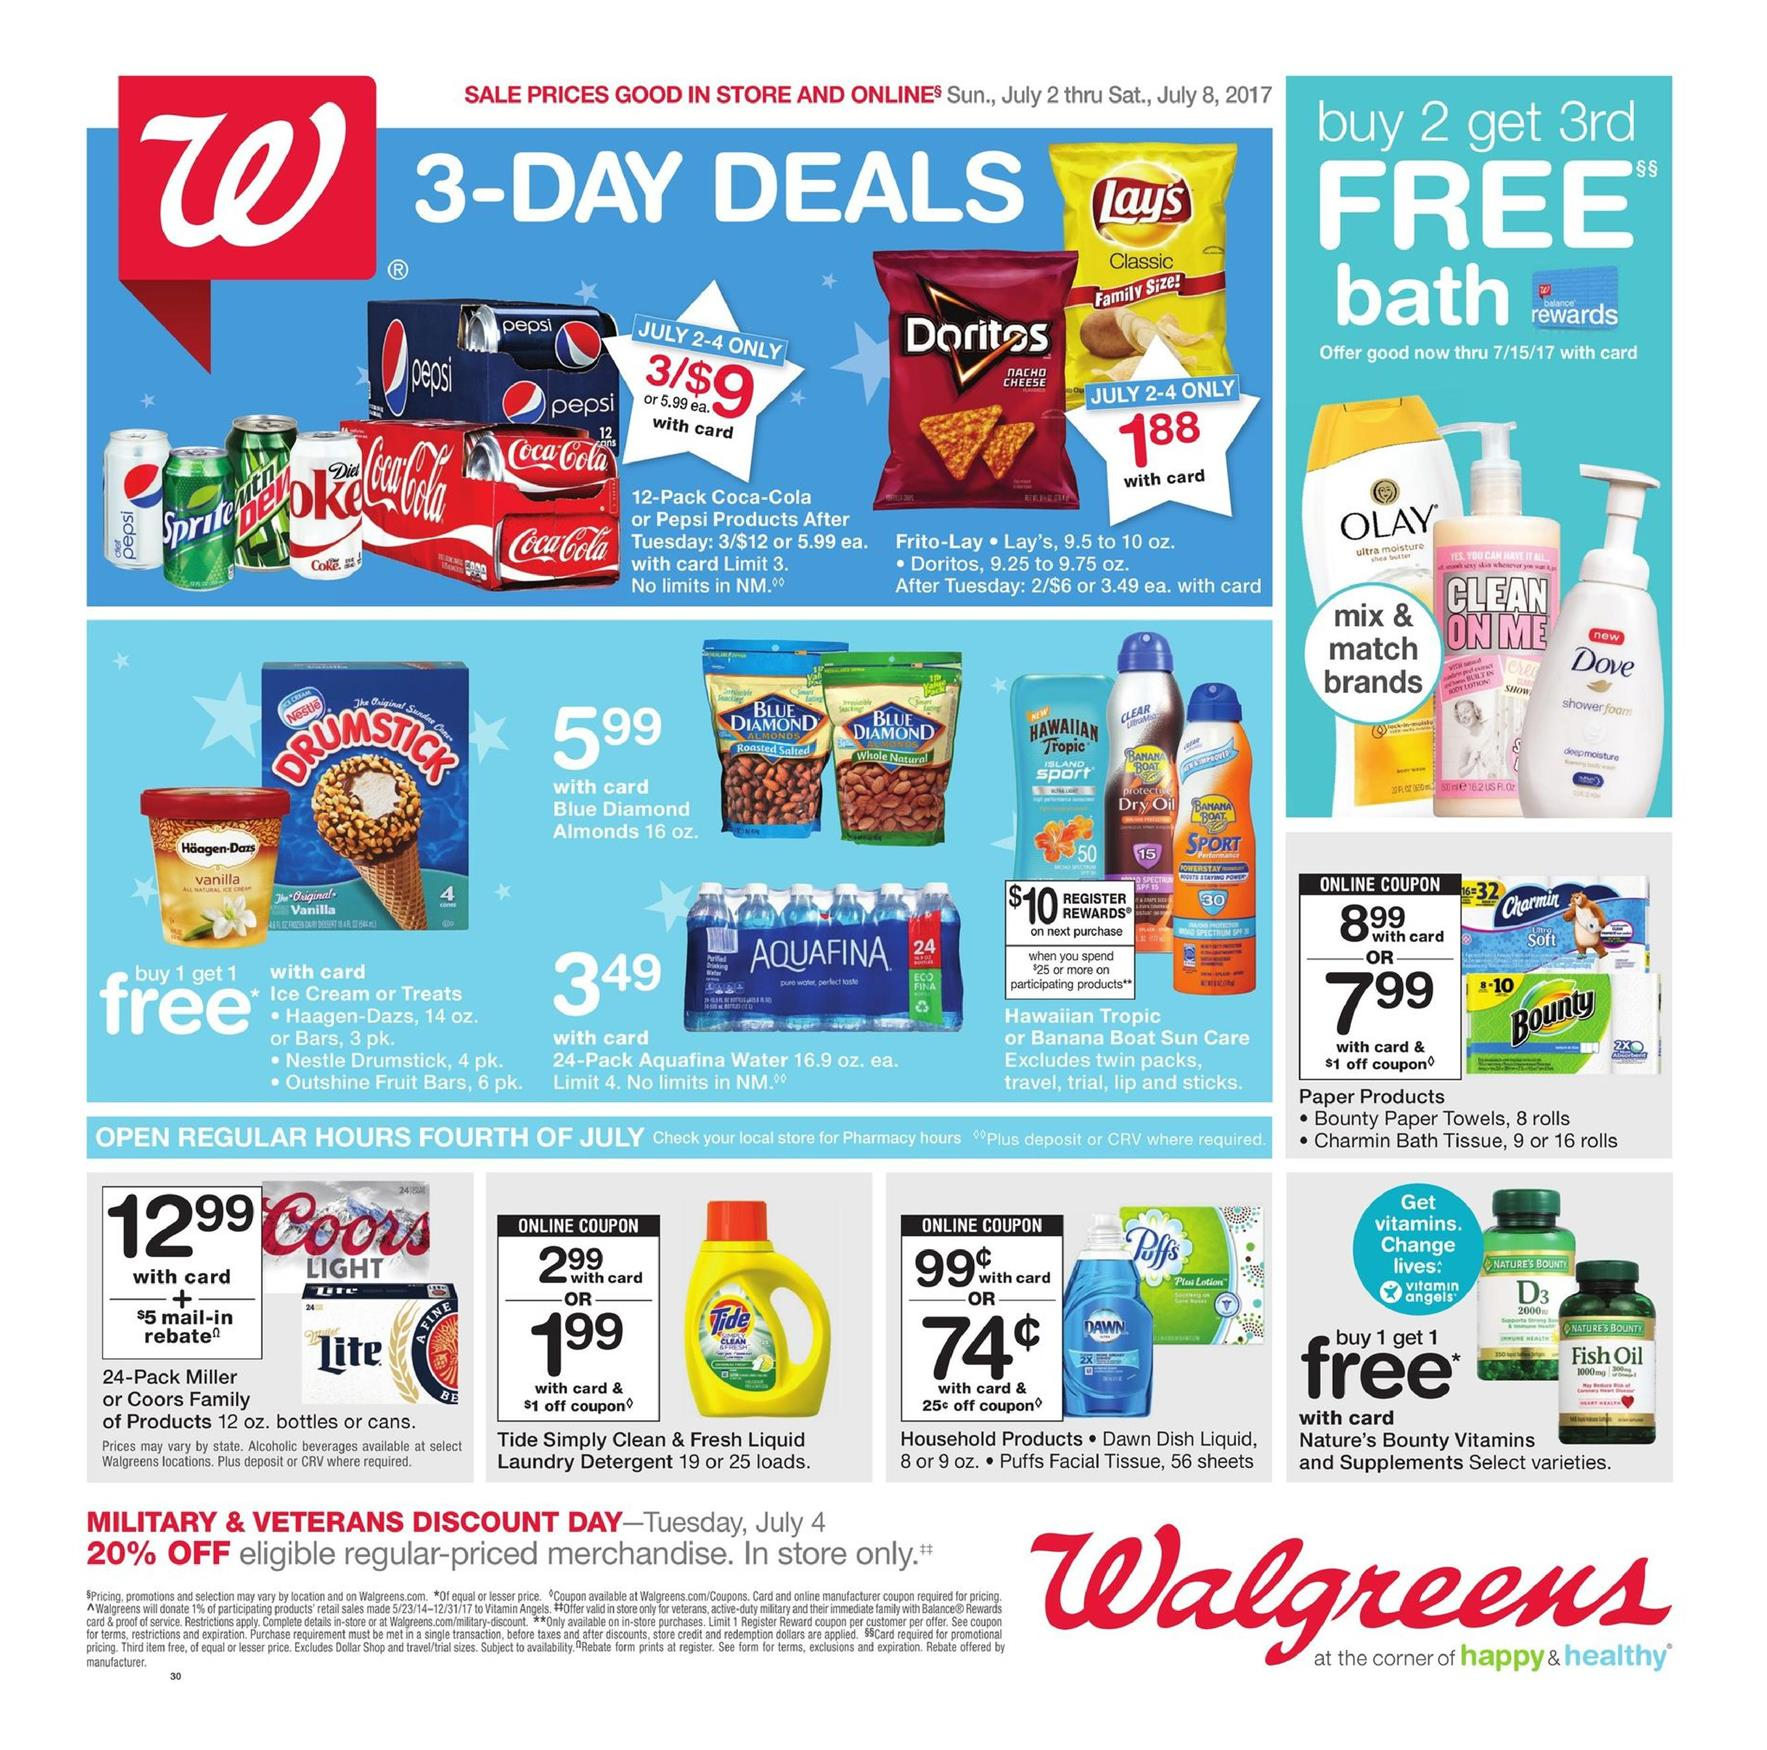 Spend less at the drug store with Walgreens store deals, coupons, promotions, & more on the things you buy. We're obsessed with Walgreens!